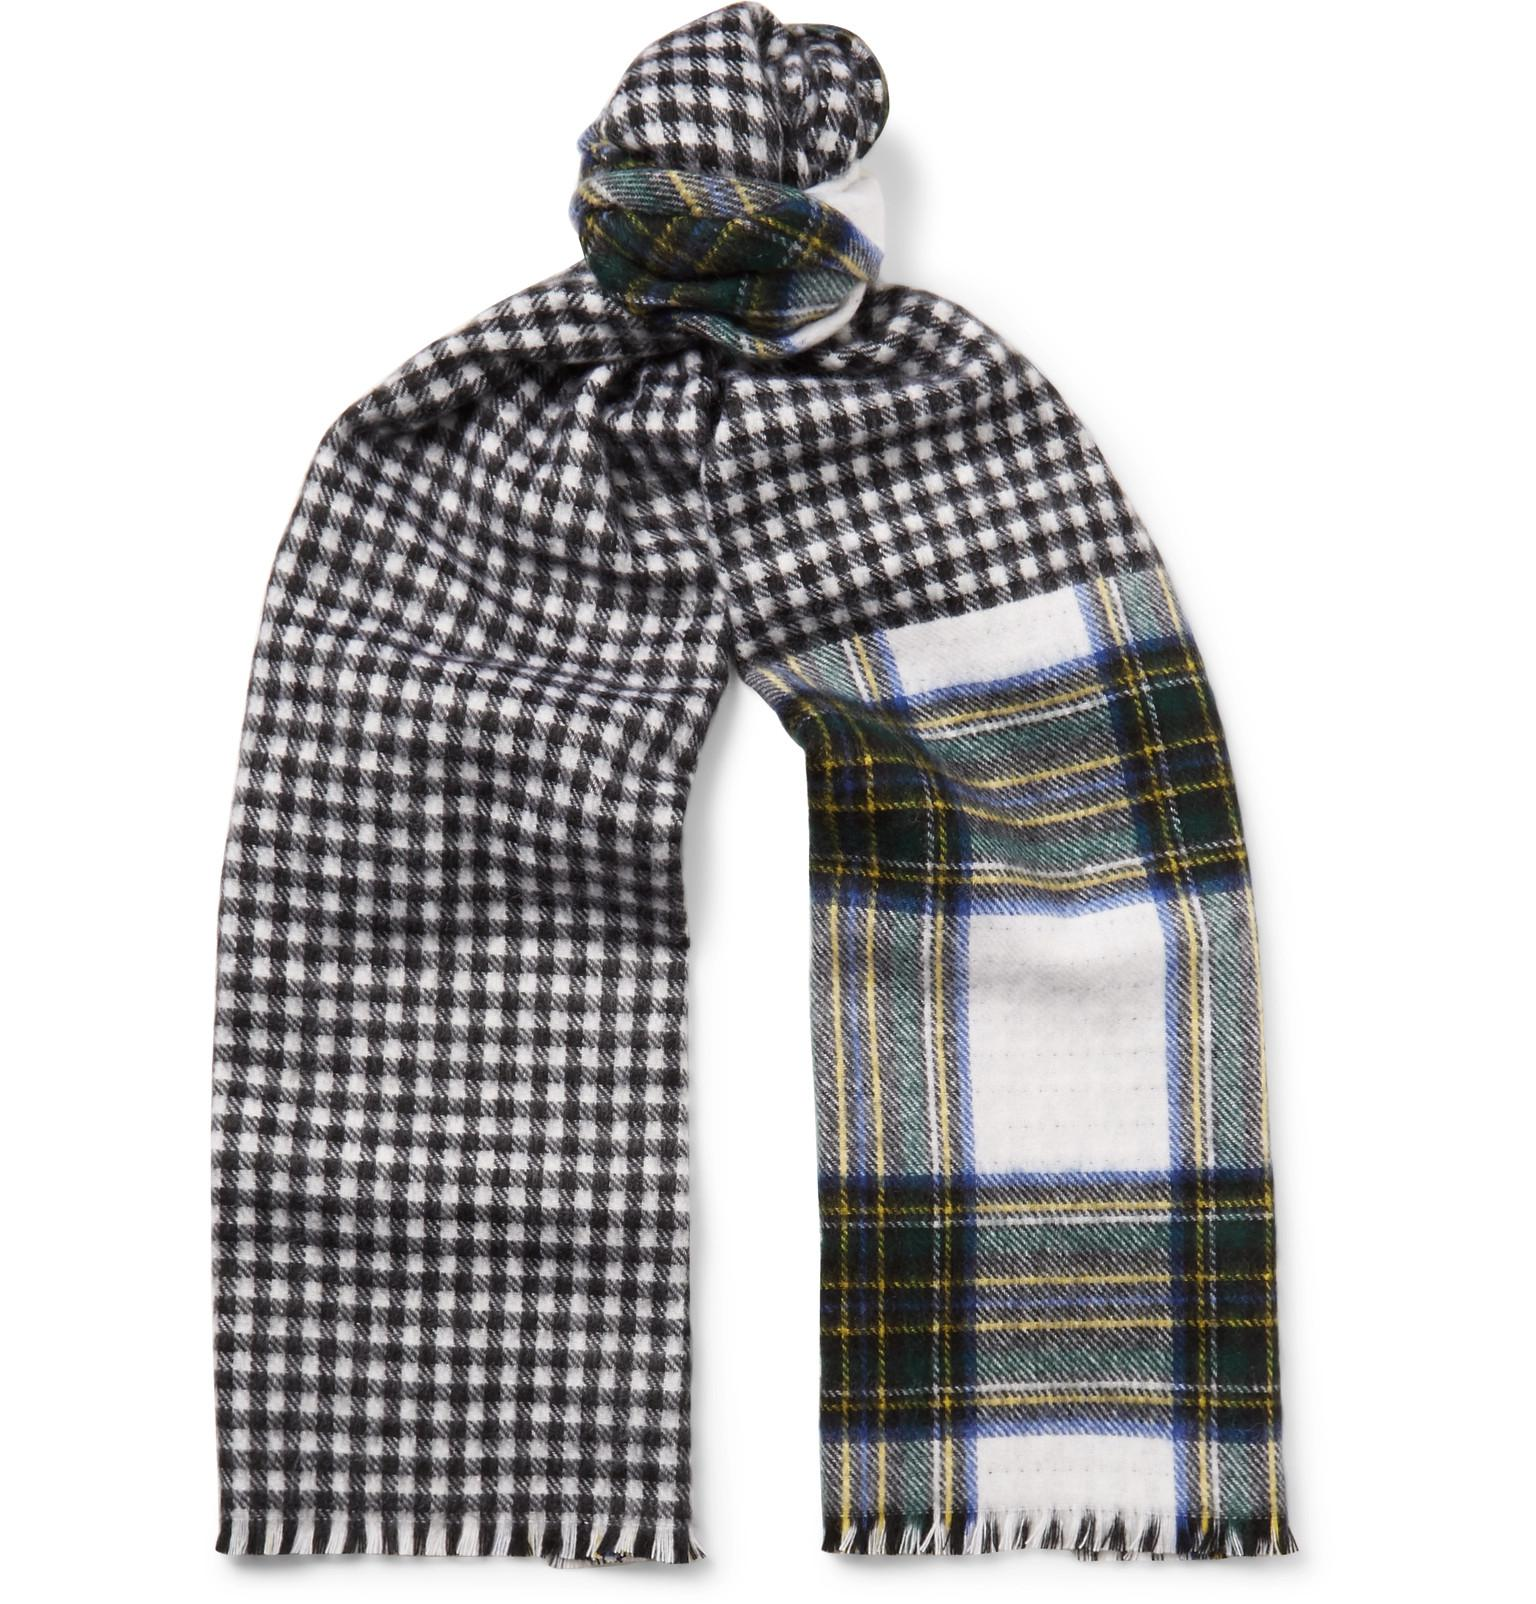 17f1d6dbe5cb7 Berluti Reversible Checked Cashmere Scarf for Men - Lyst